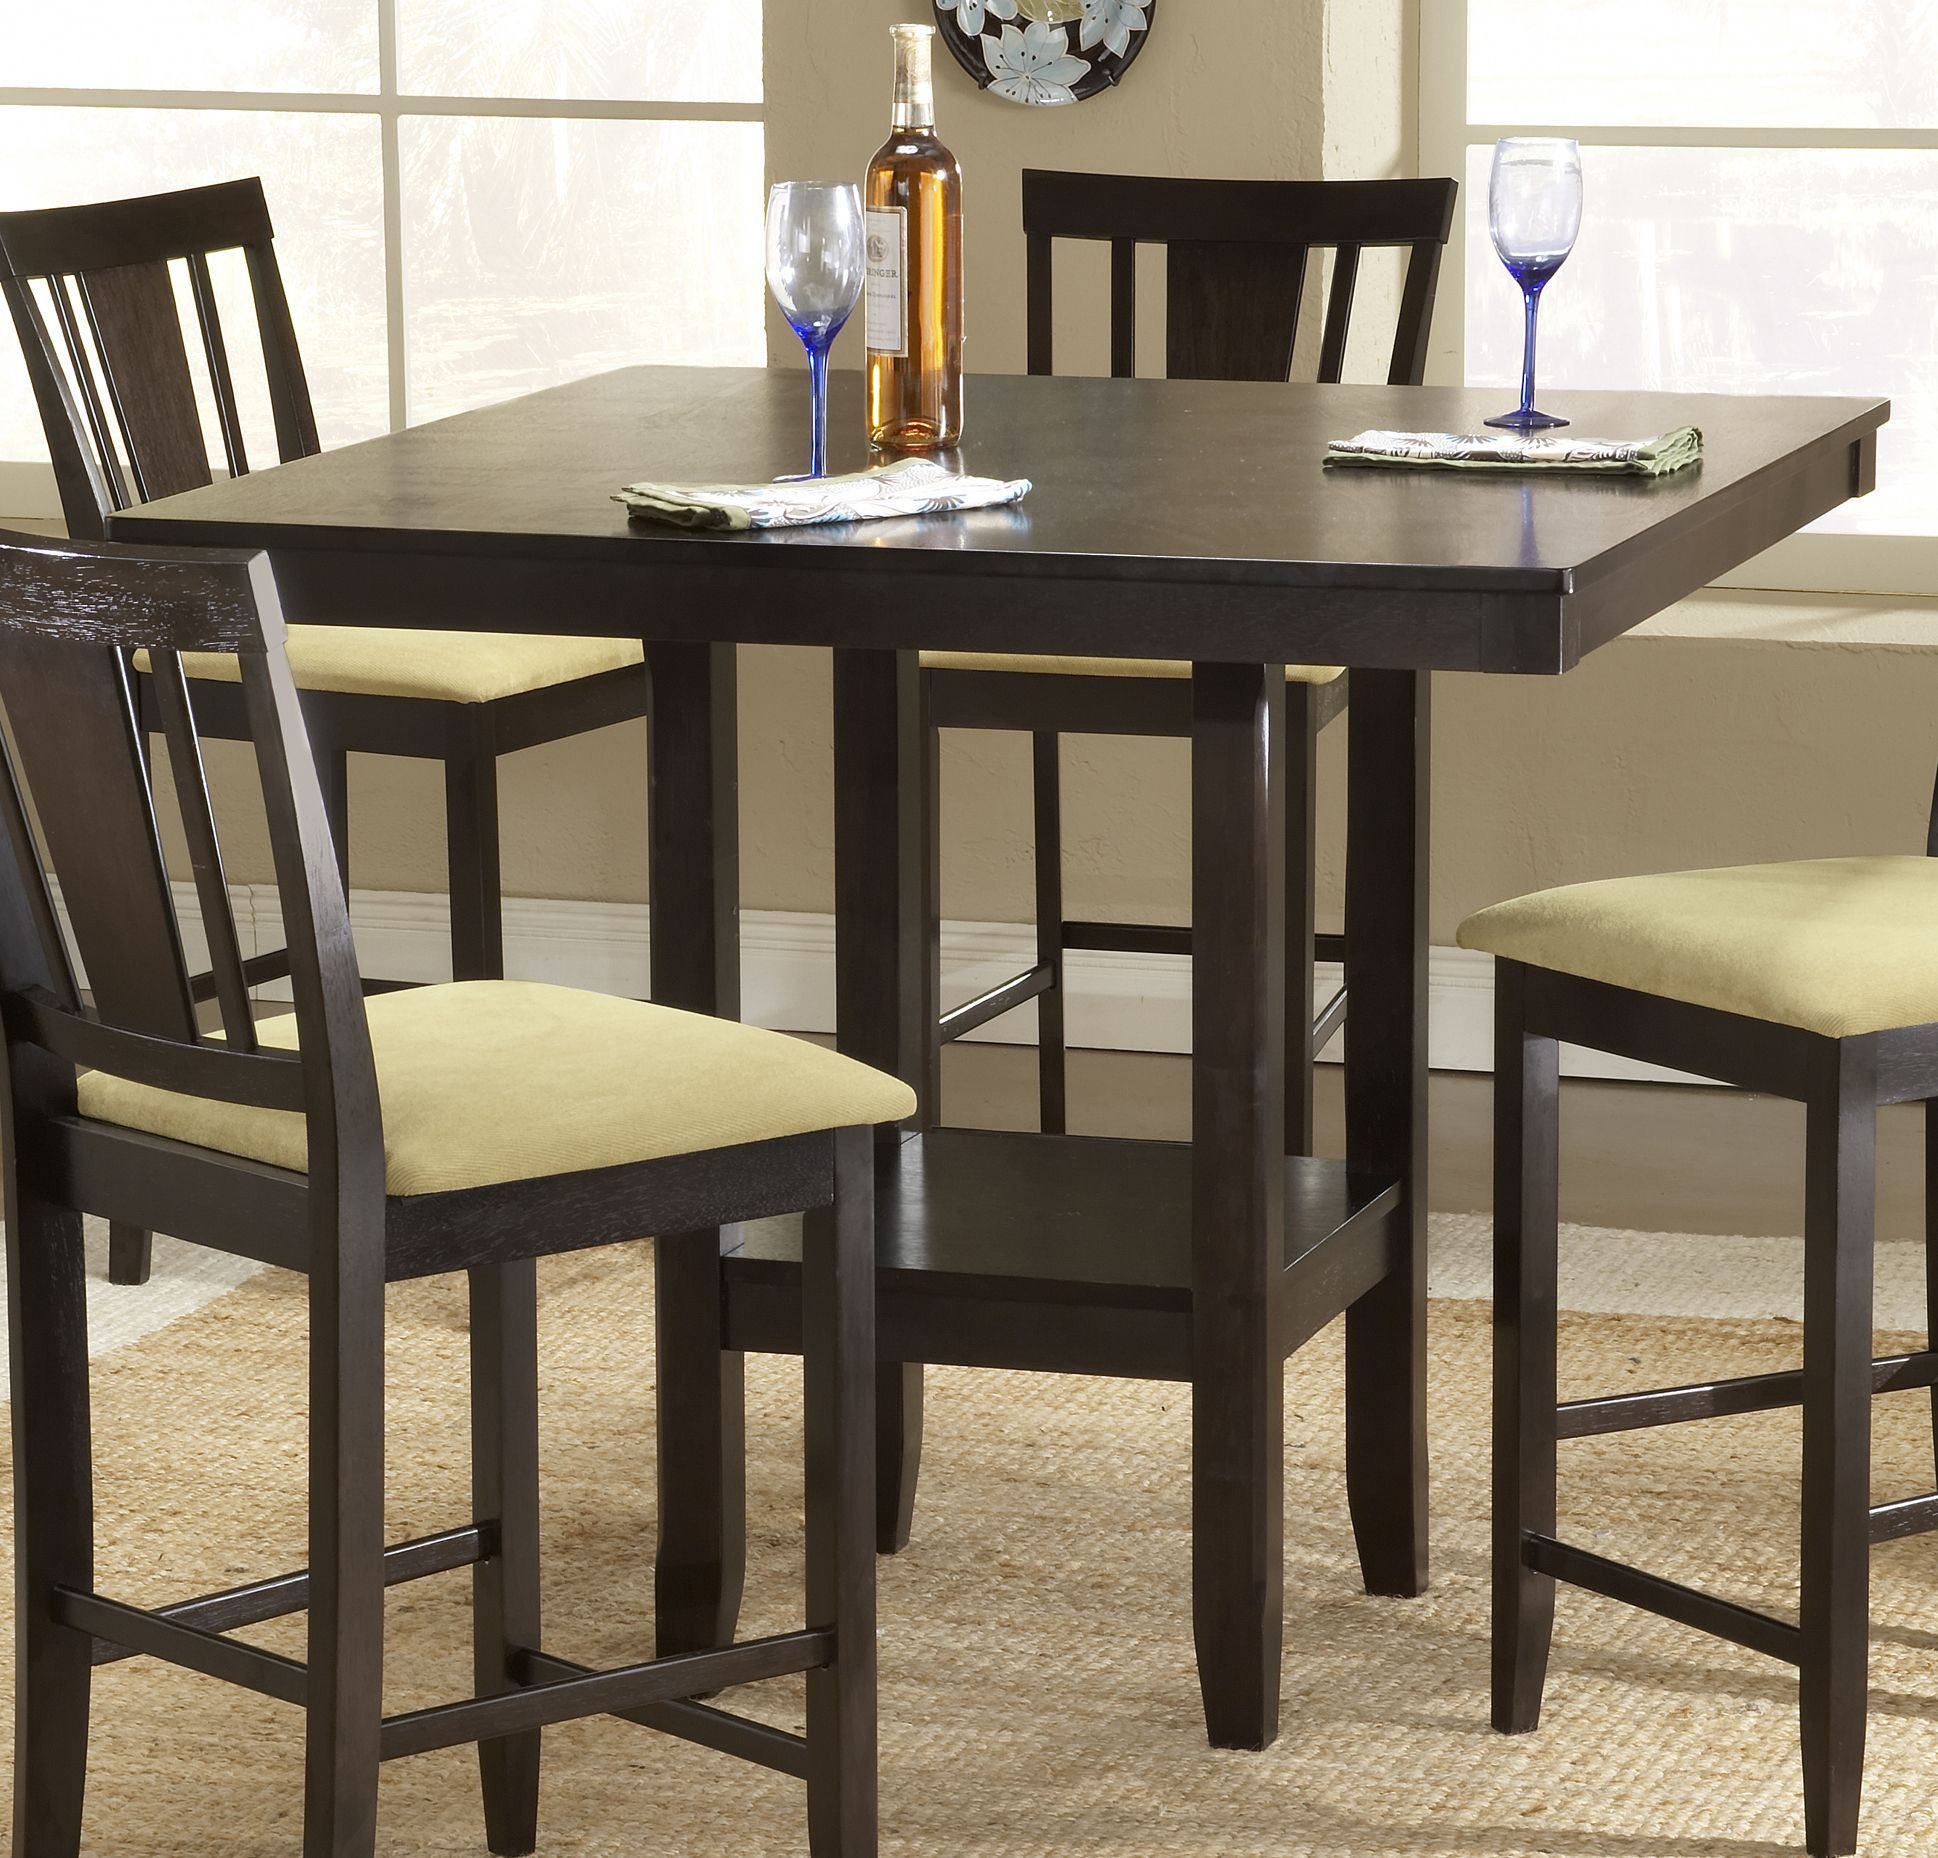 Counter Height Dining Table Yes Or No Anlamli Net In 2020